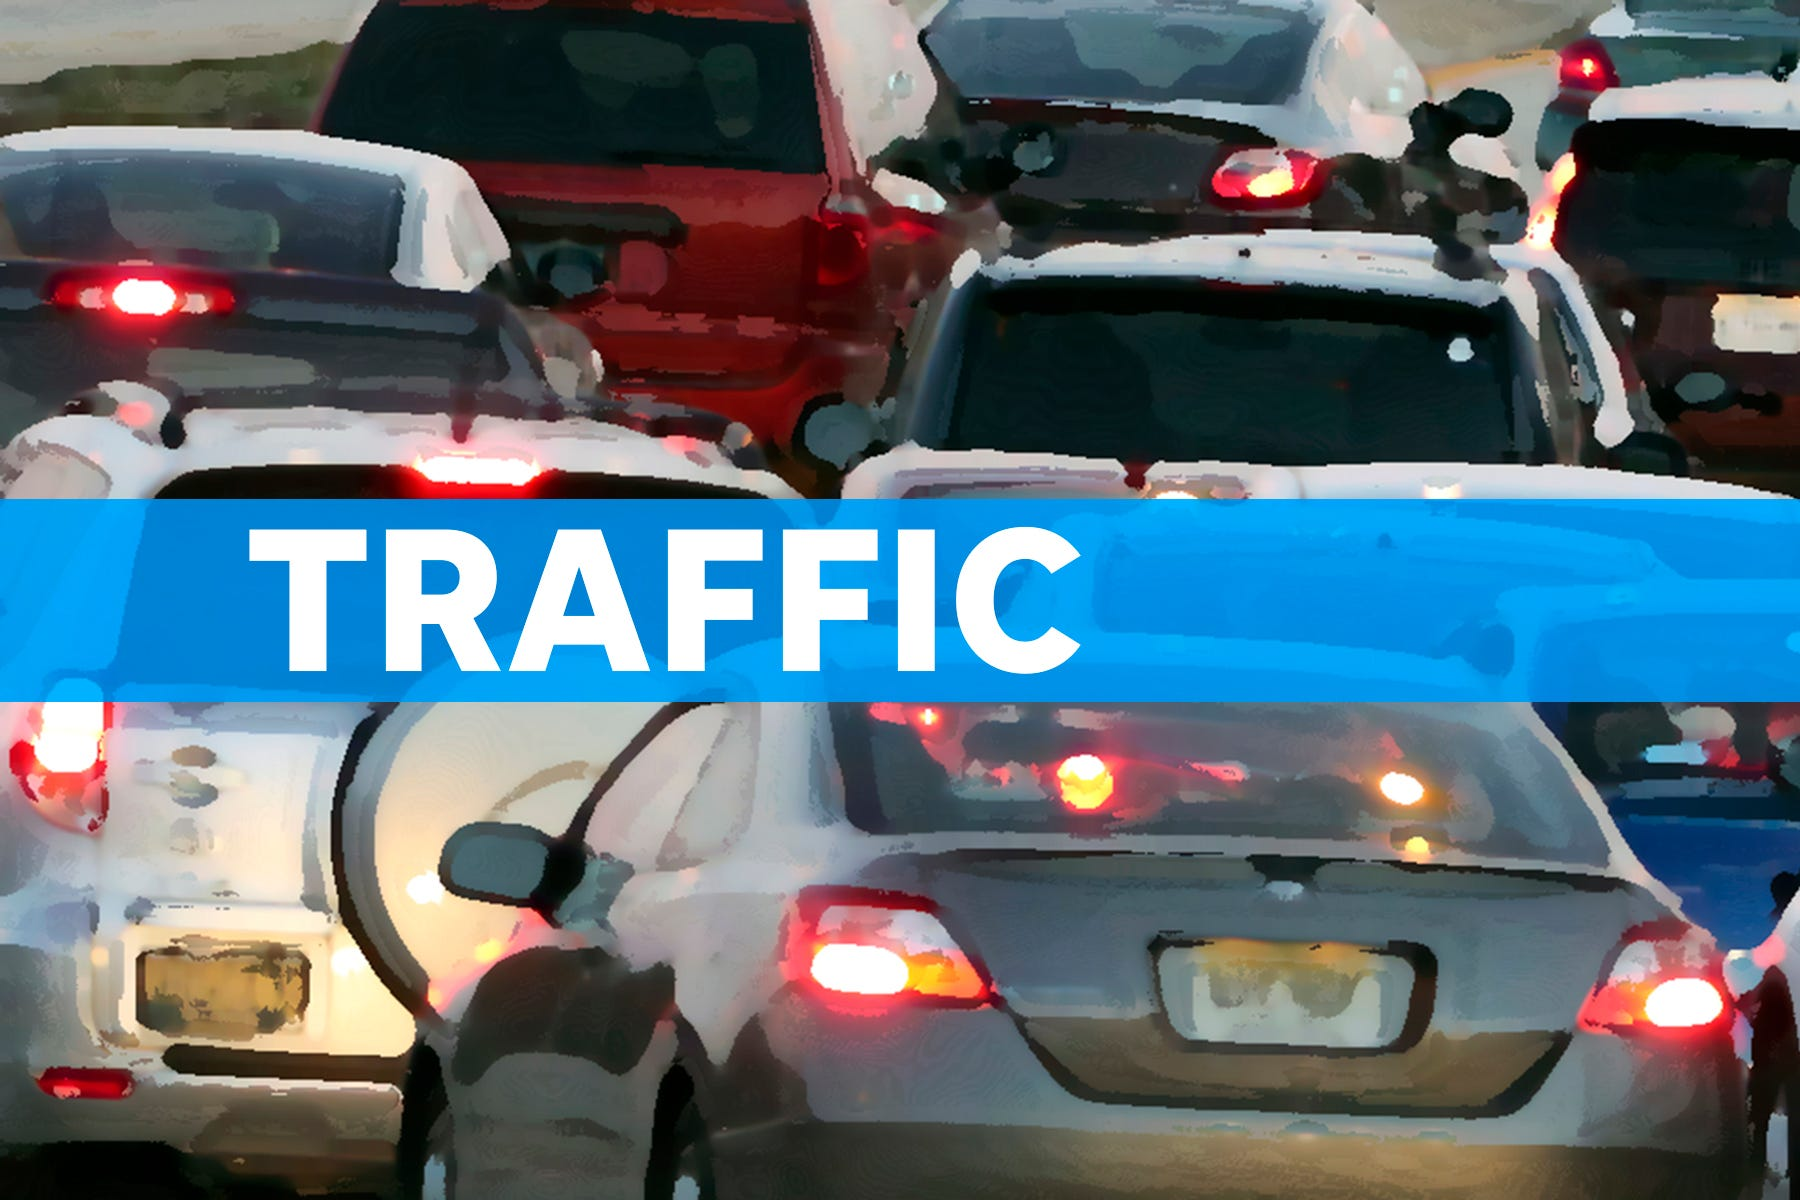 All lanes open after crash stalled traffic on I-95, near U.S. 202